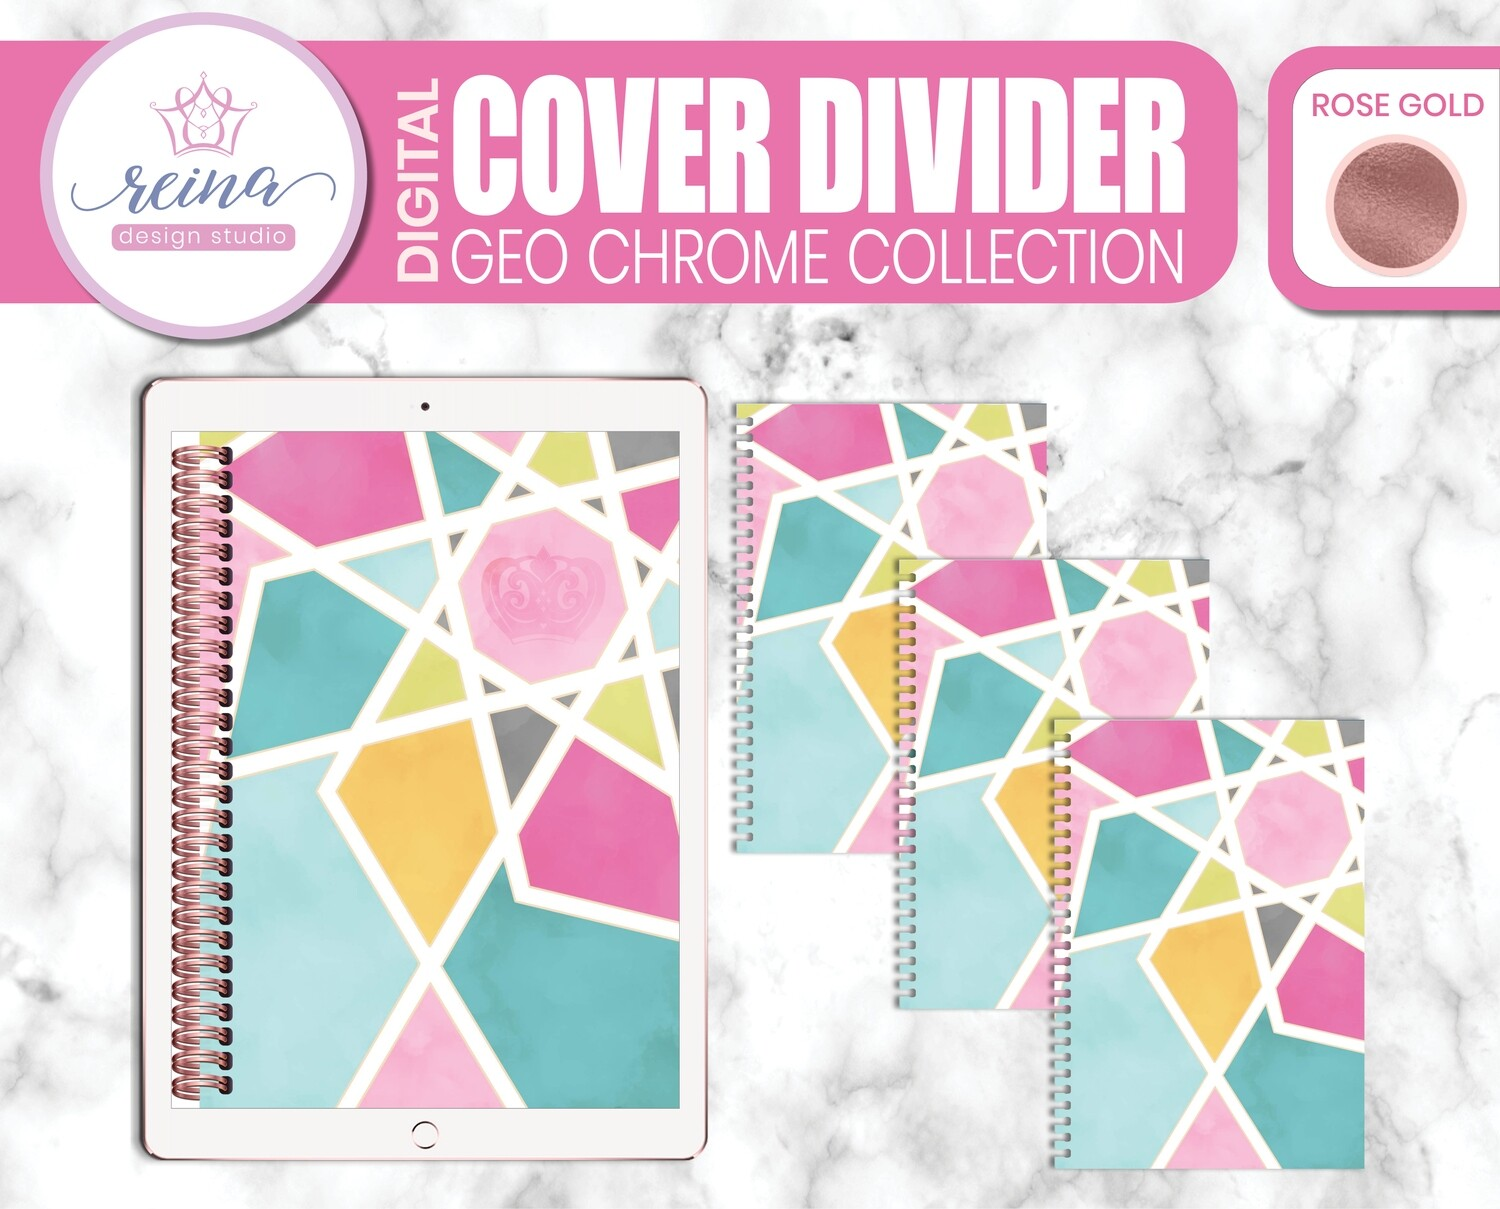 Interchangeable Digital Planner Cover and Dividers | Geo Chrome, Rose Gold